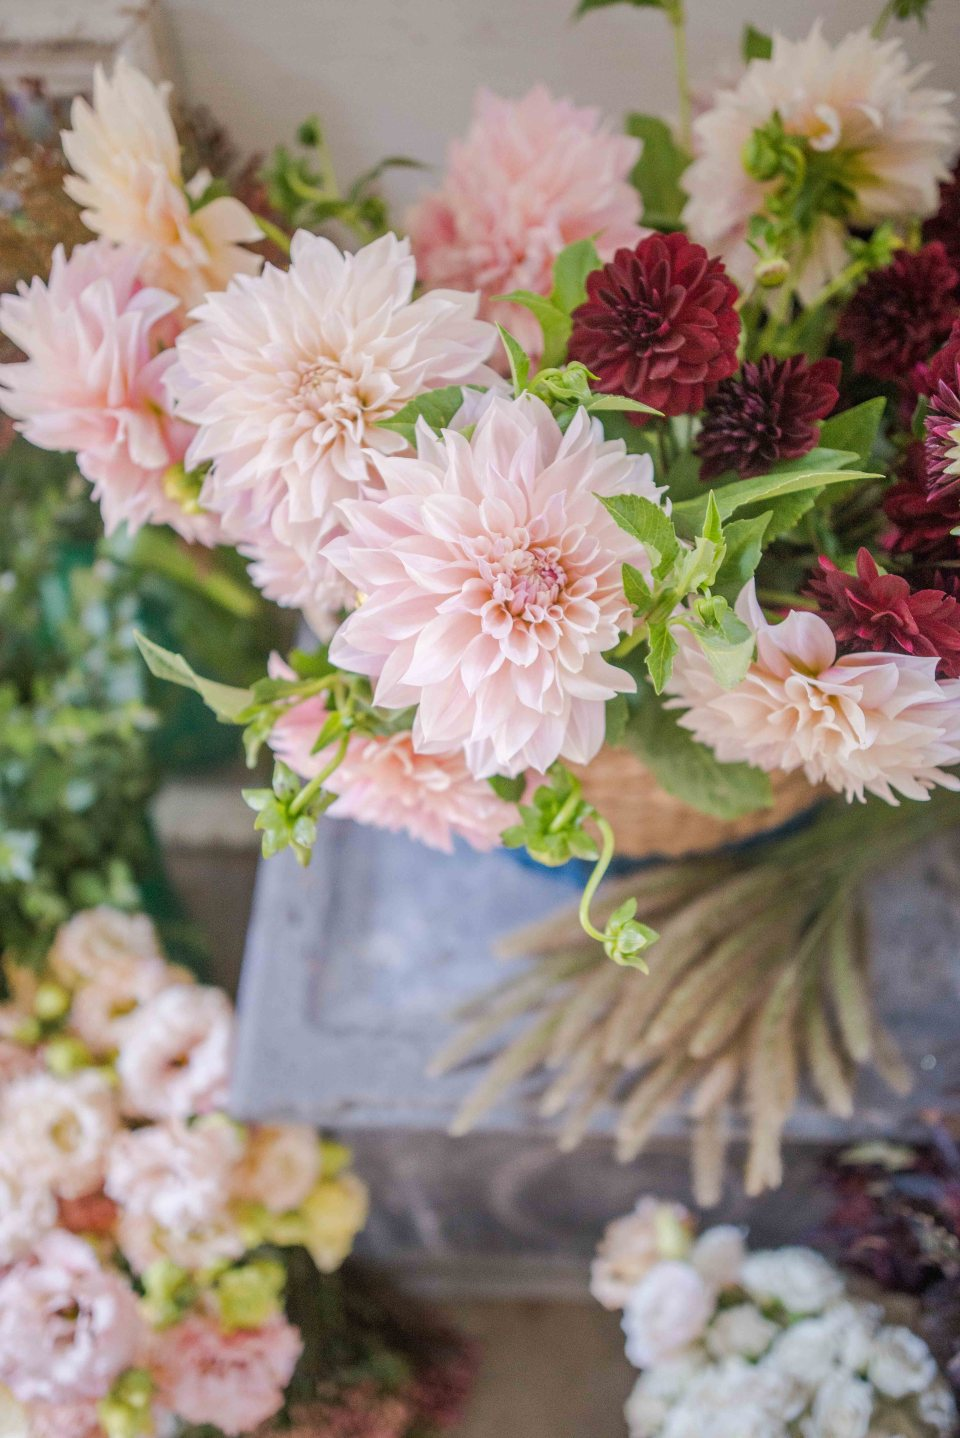 Beautiful Flowers - Cafe au Lait Dahlias